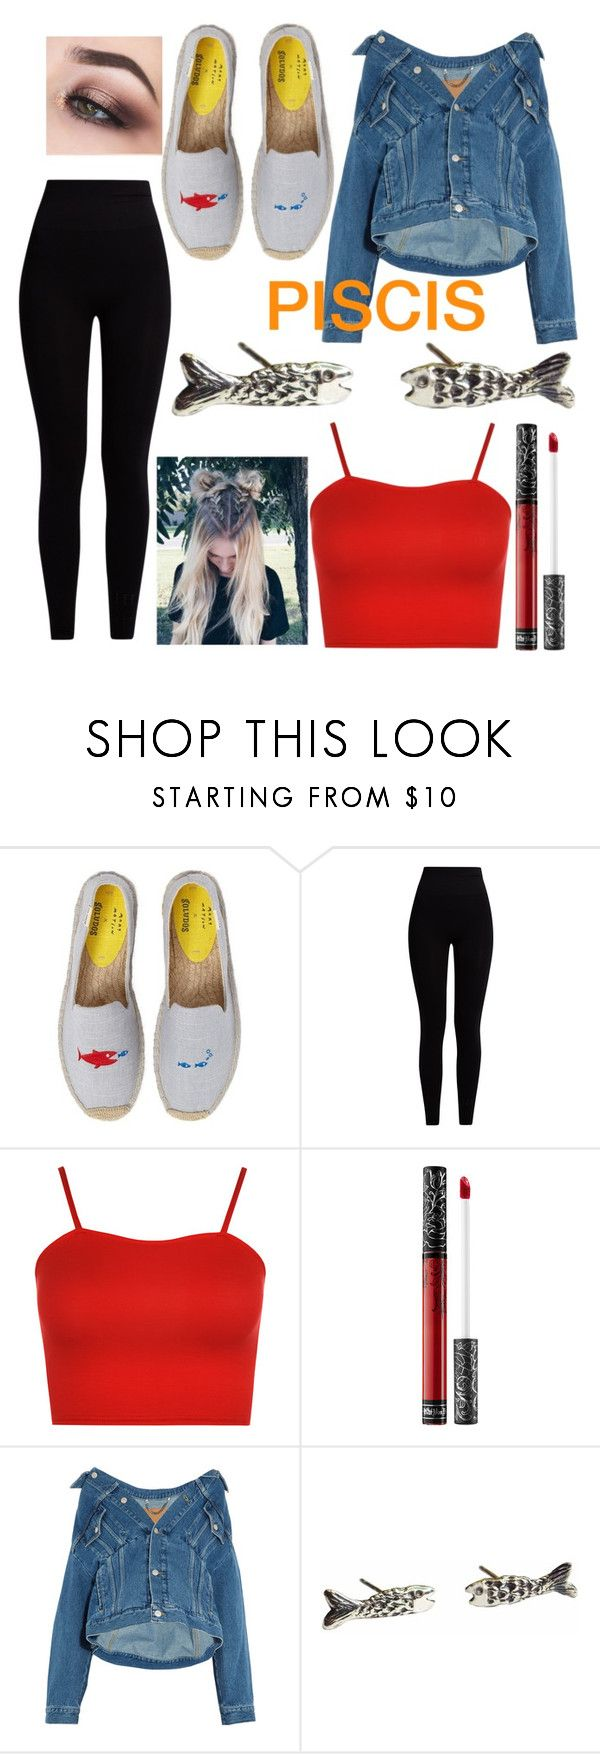 """""""Its Not Pisces Its PISCIS"""" by mrs-stilinski1520 ❤ liked on Polyvore featuring Soludos, Pepper & Mayne, WearAll, Kat Von D, Balenciaga and momocreatura"""